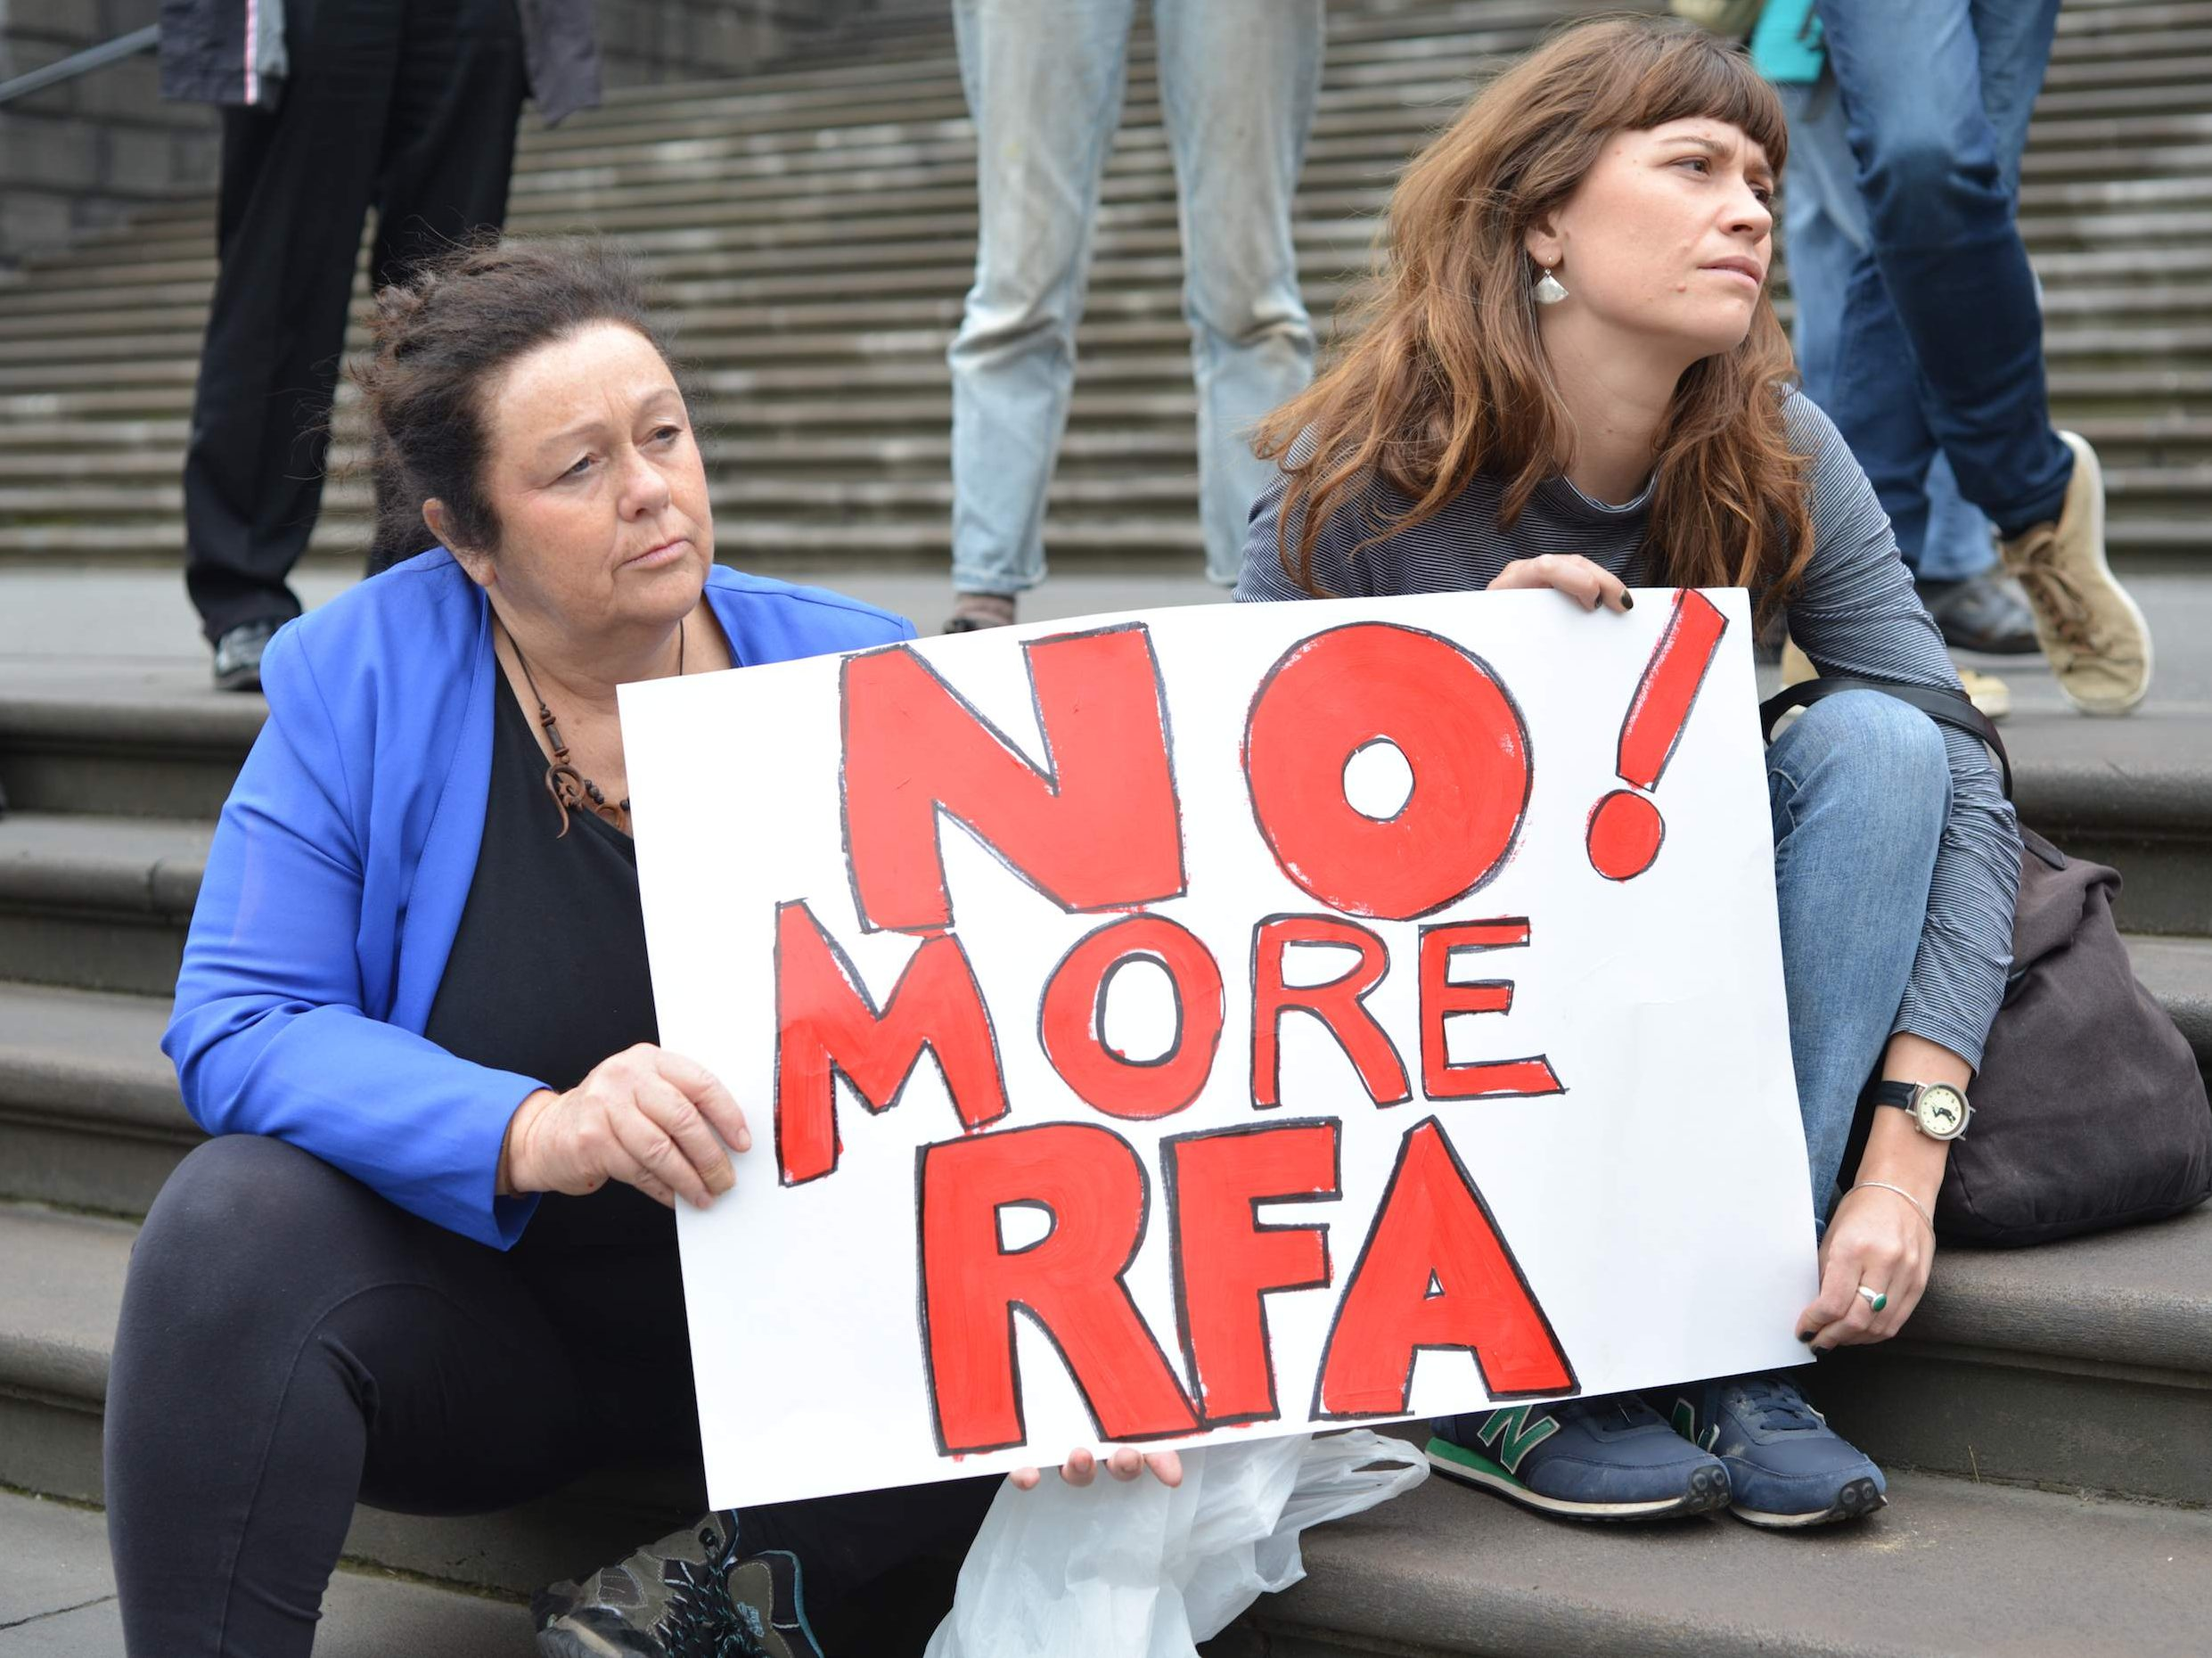 No more RFA